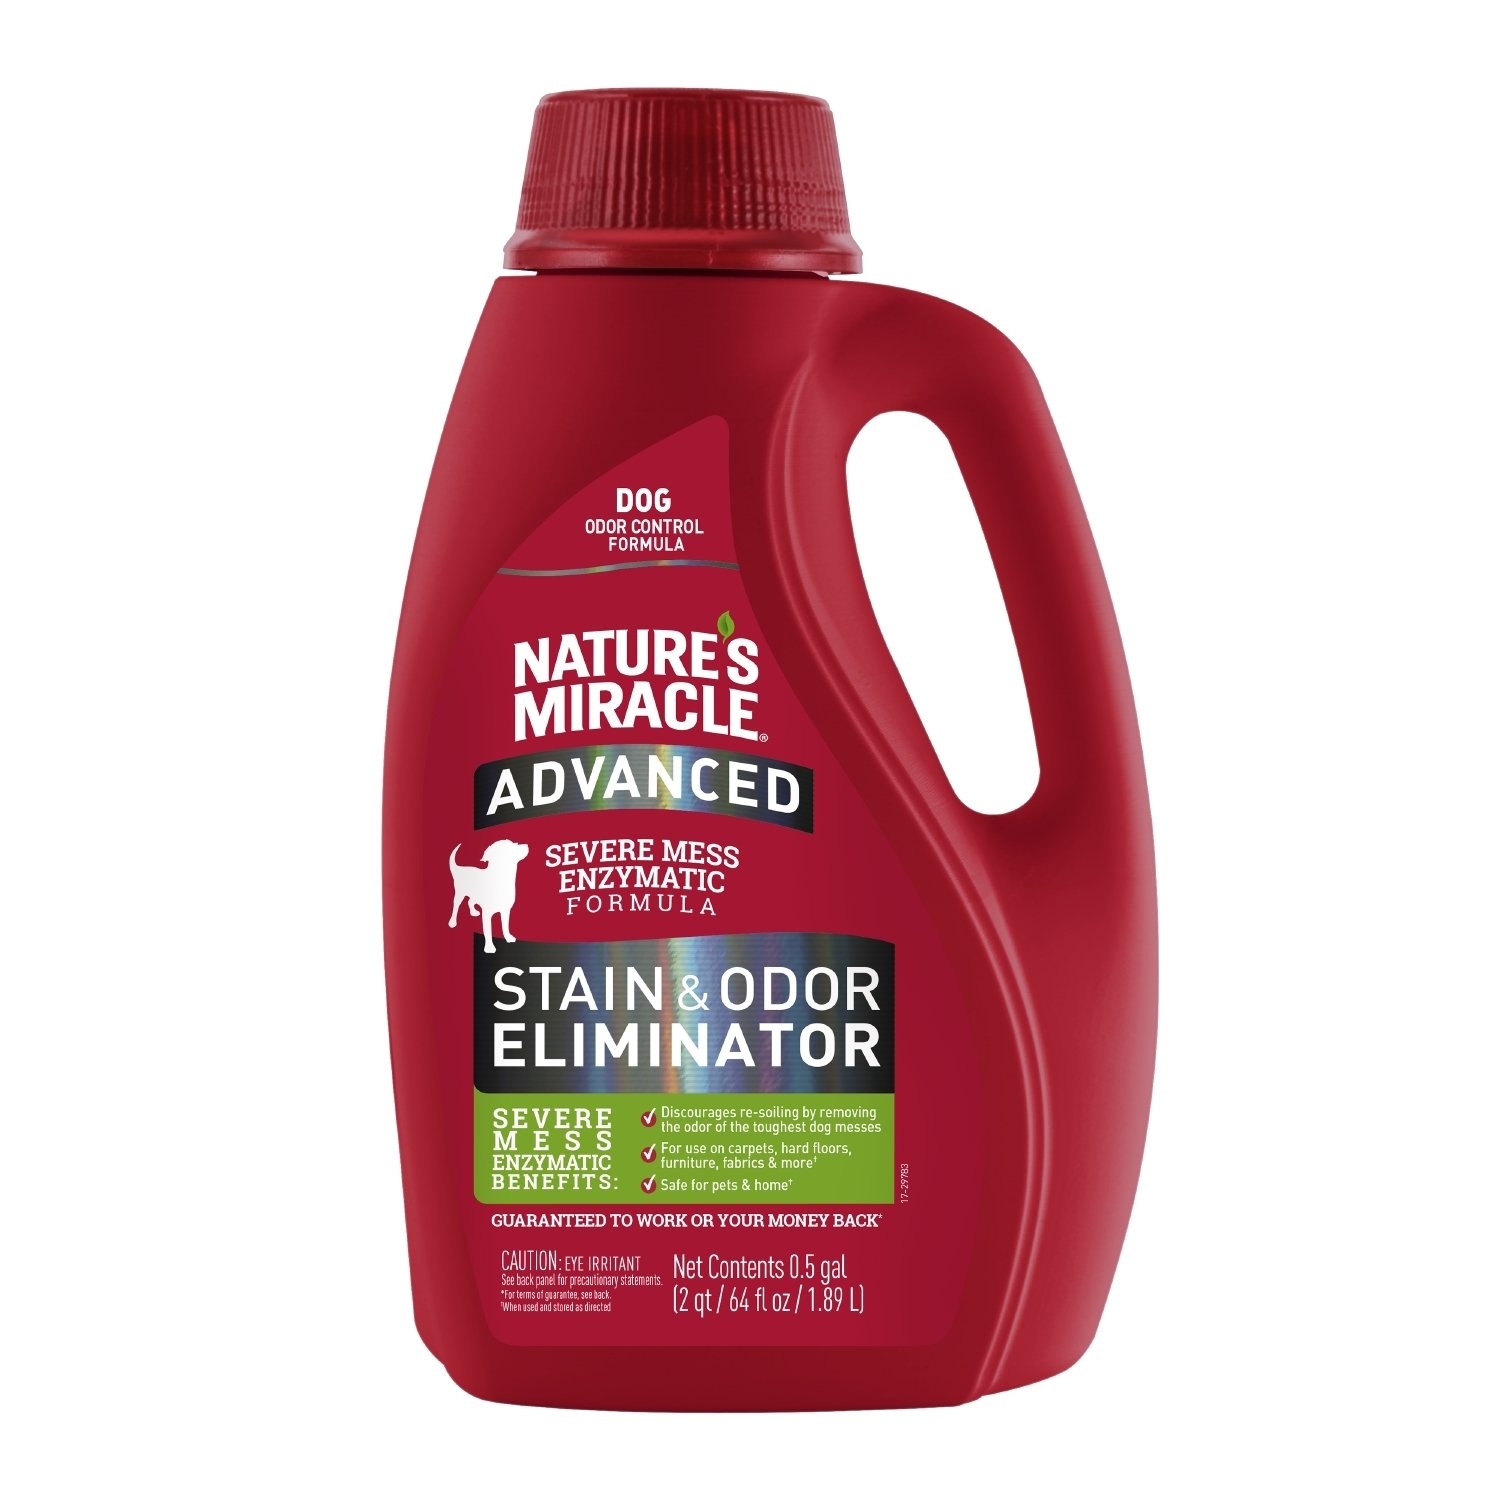 Nature's Miracle P-98142 Stain & Odor Remover, 2 qt/ 64 fl oz/ 1.89 L